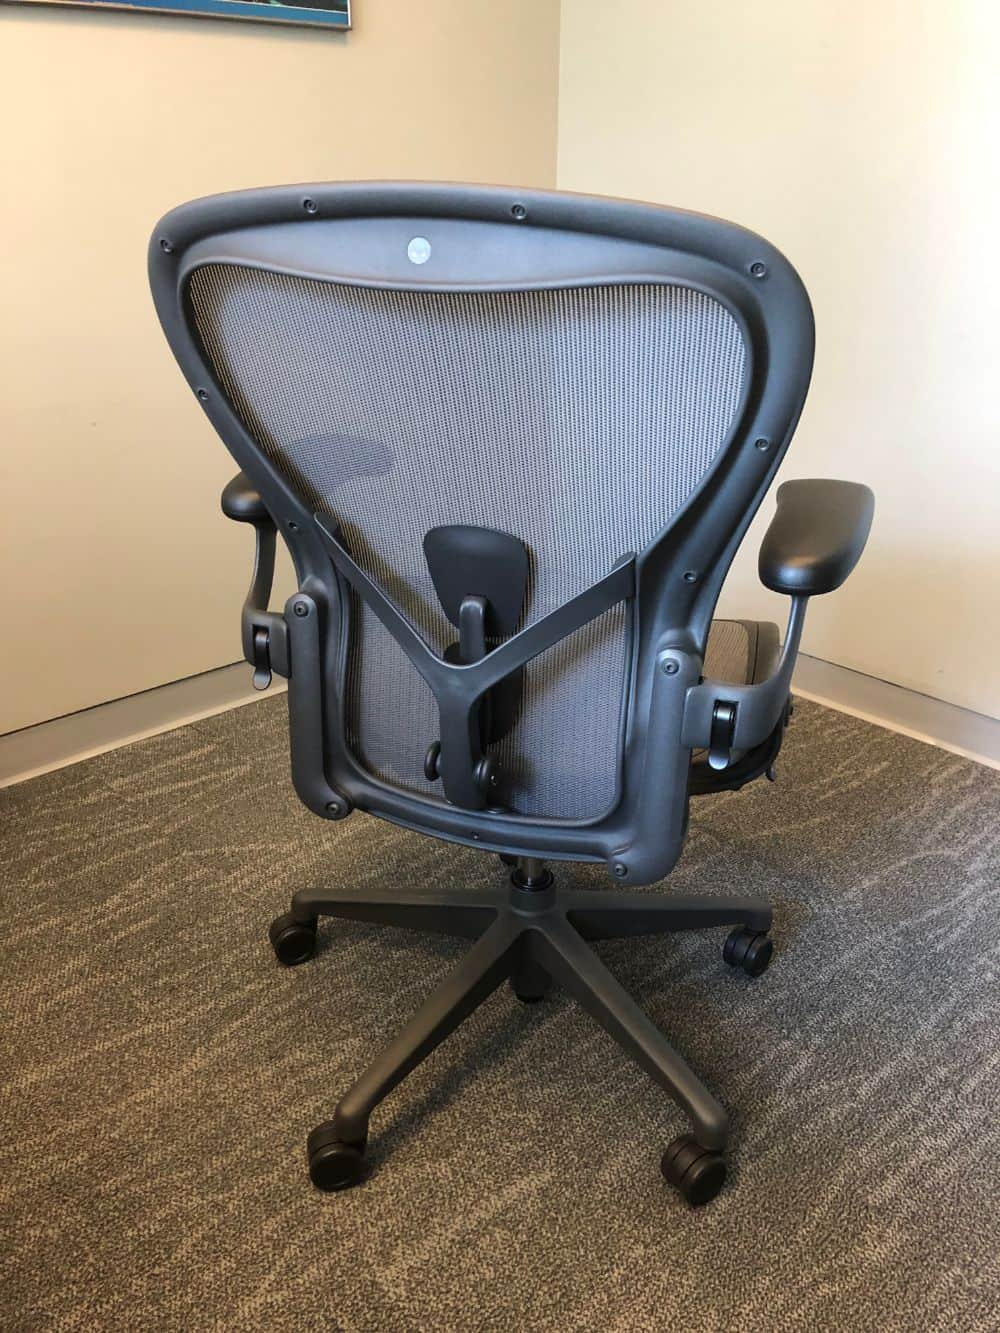 Back view of herman miller aeron chair